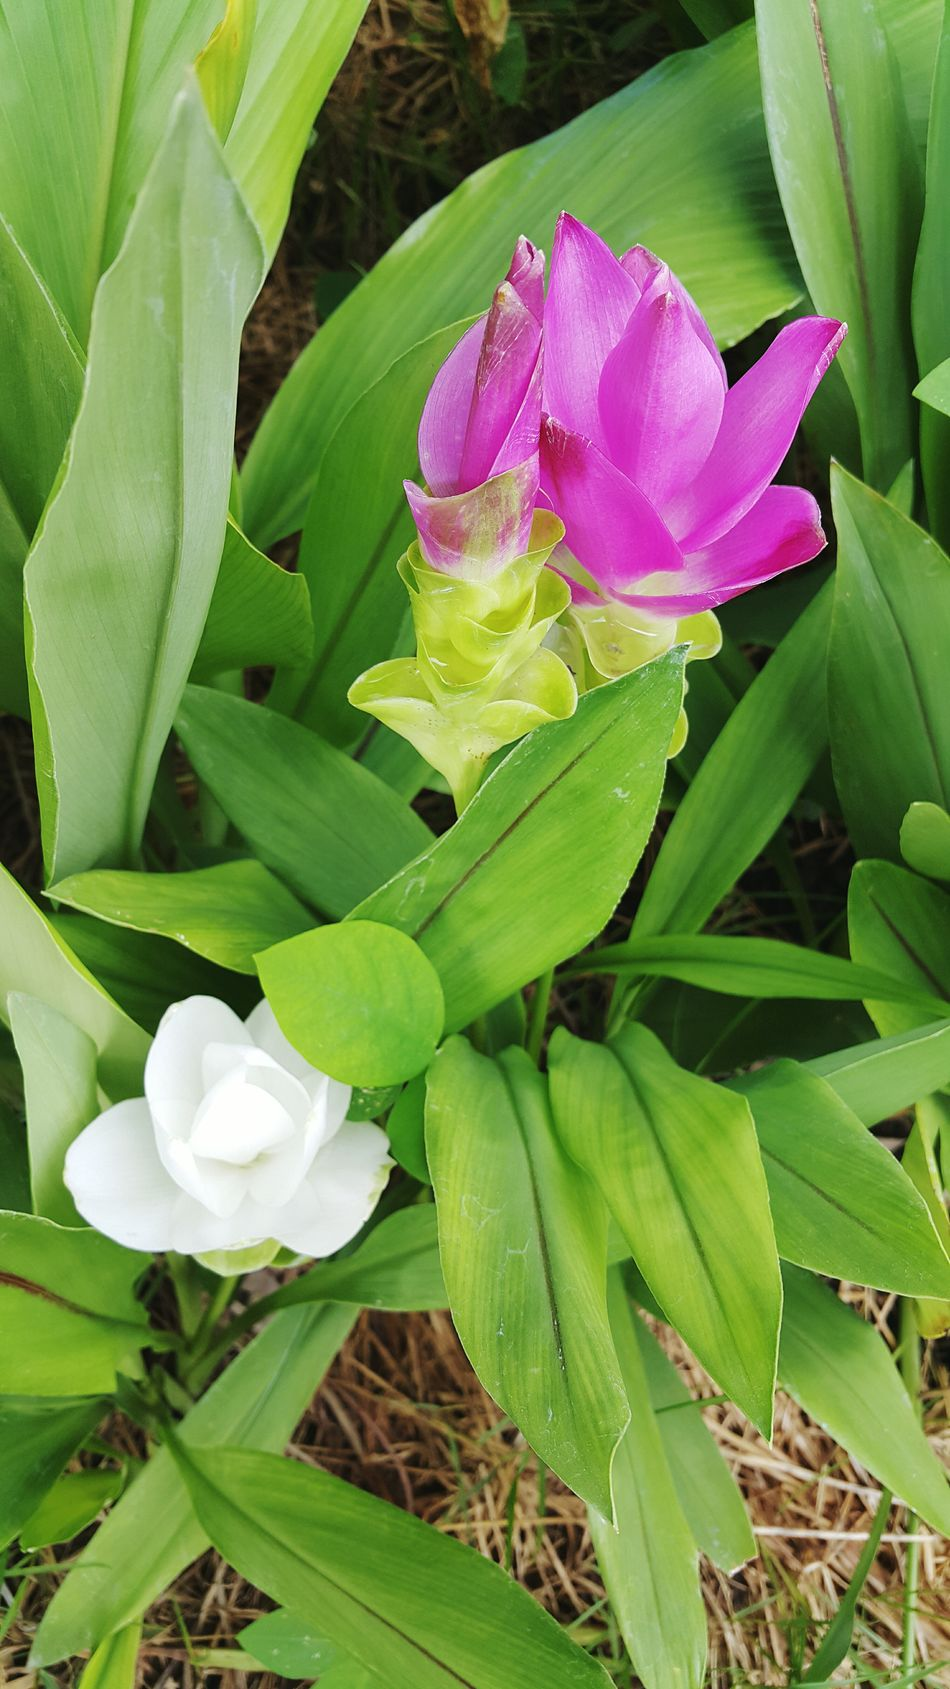 Siam Tulip Flowers Flower Collection Flowers, Nature And Beauty Flower Photography Flowerlovers Nature Nature_collection Nature Photography Natural Beauty